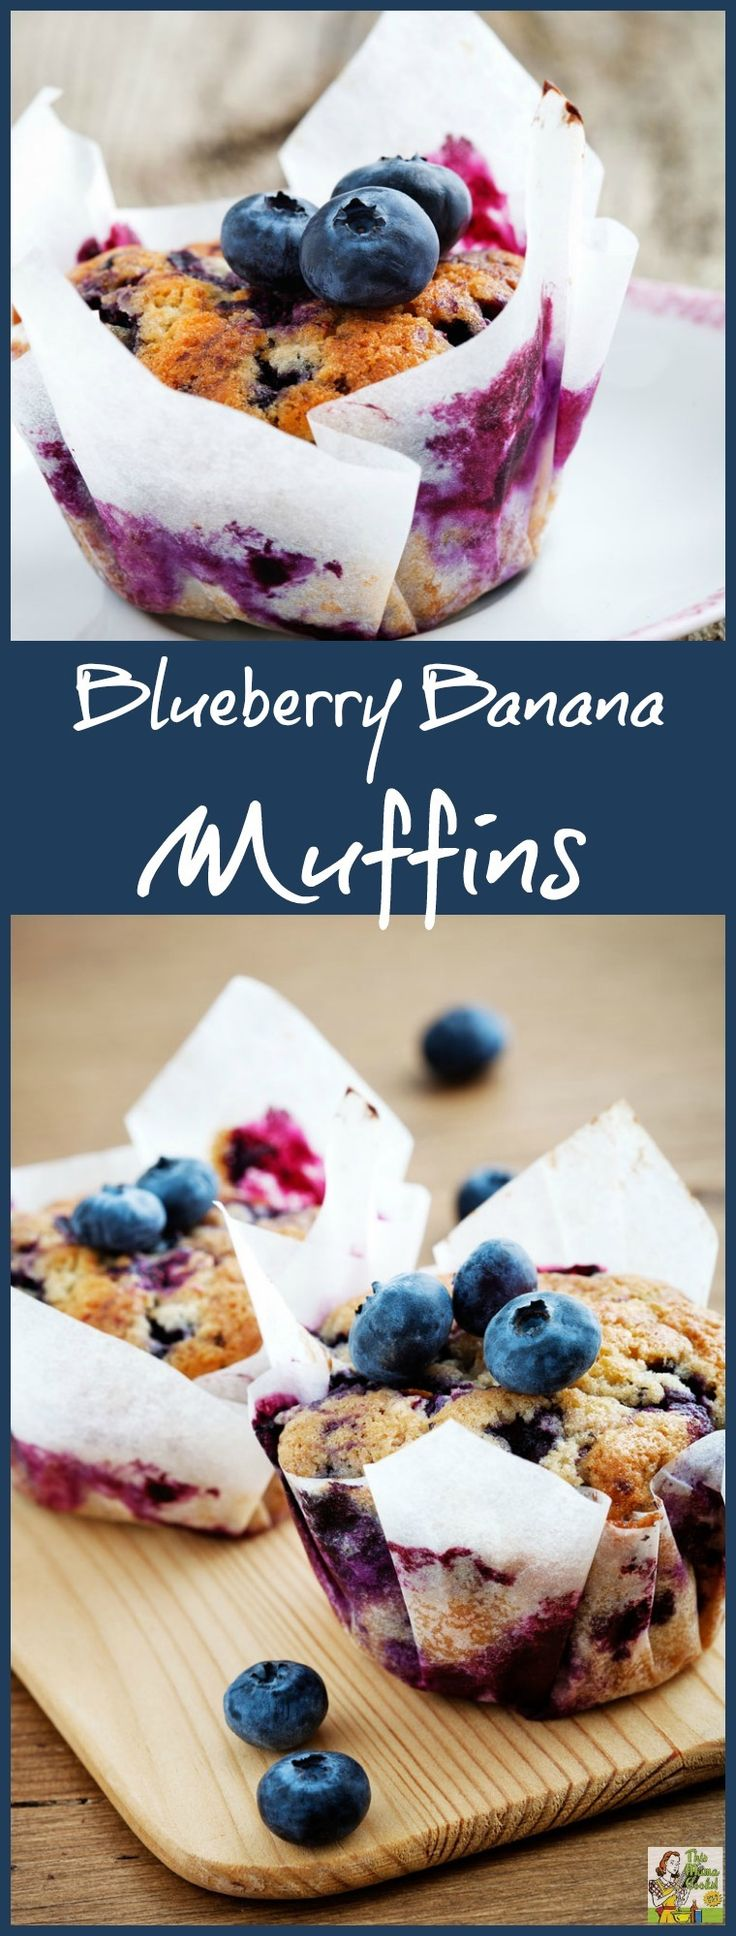 Looking for Jillian Michaels recipes from The Master Your Metabolism Cookbook? Here's a recipe for blueberry yogurt muffins made with bananas that's not only good for you but is easy to make! Make these blueberry yogurt muffins for breakfast, a healthy post-workout snack, or even dessert!